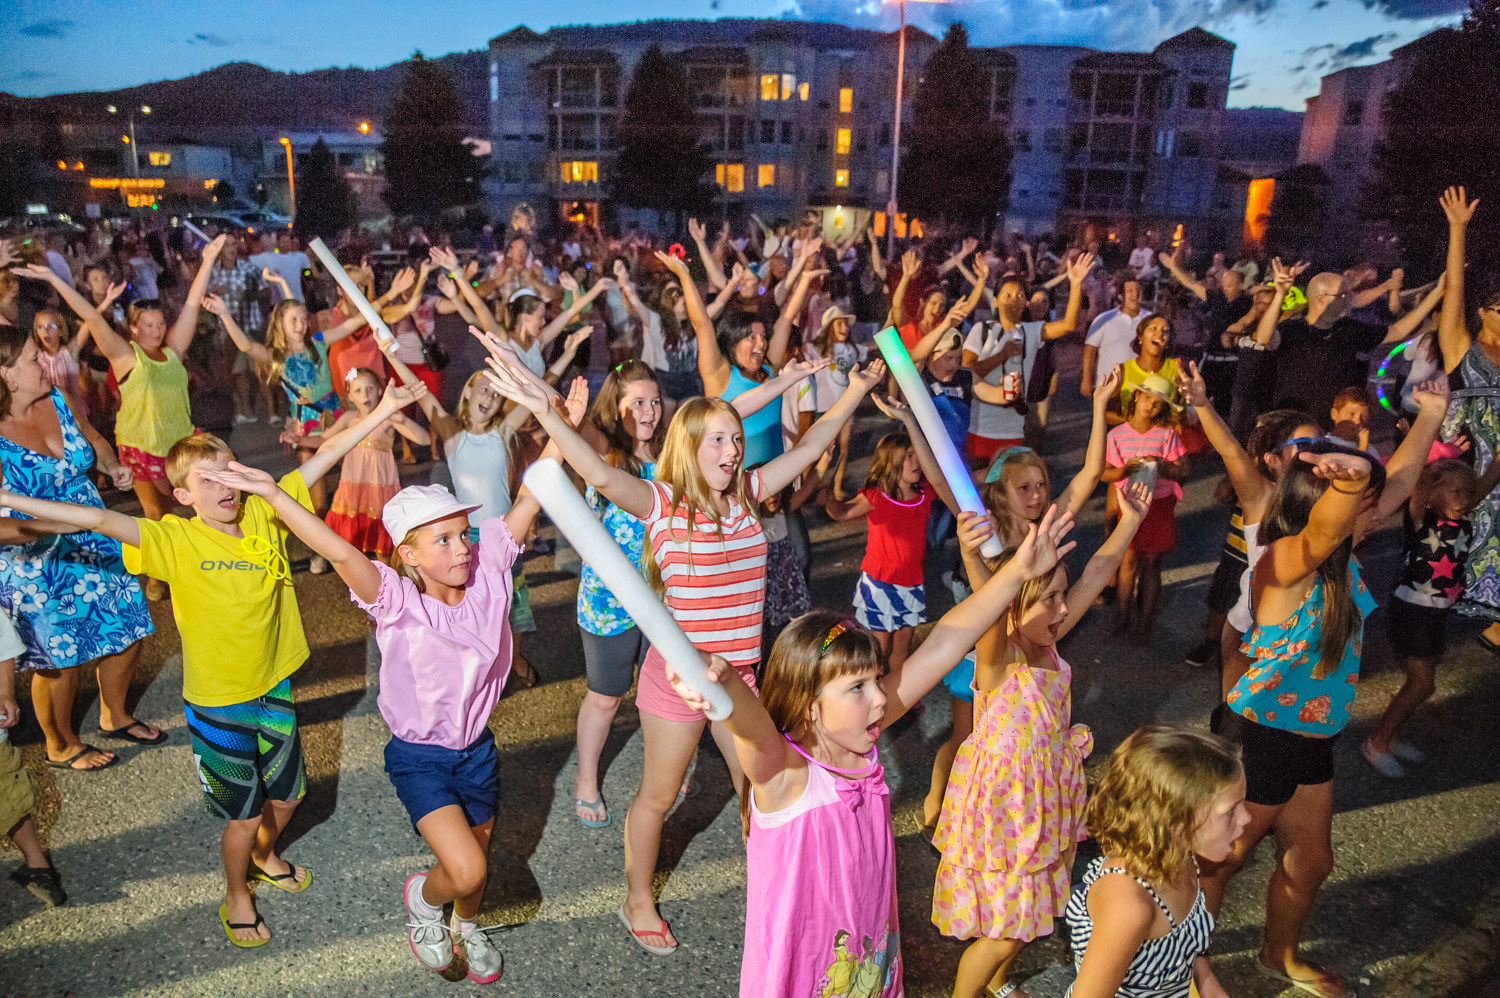 Another song that made a return for the second Osoyoos street dance was the Village People's Y.M.C.A. Dozens of kids and adults raised their hands in unison.